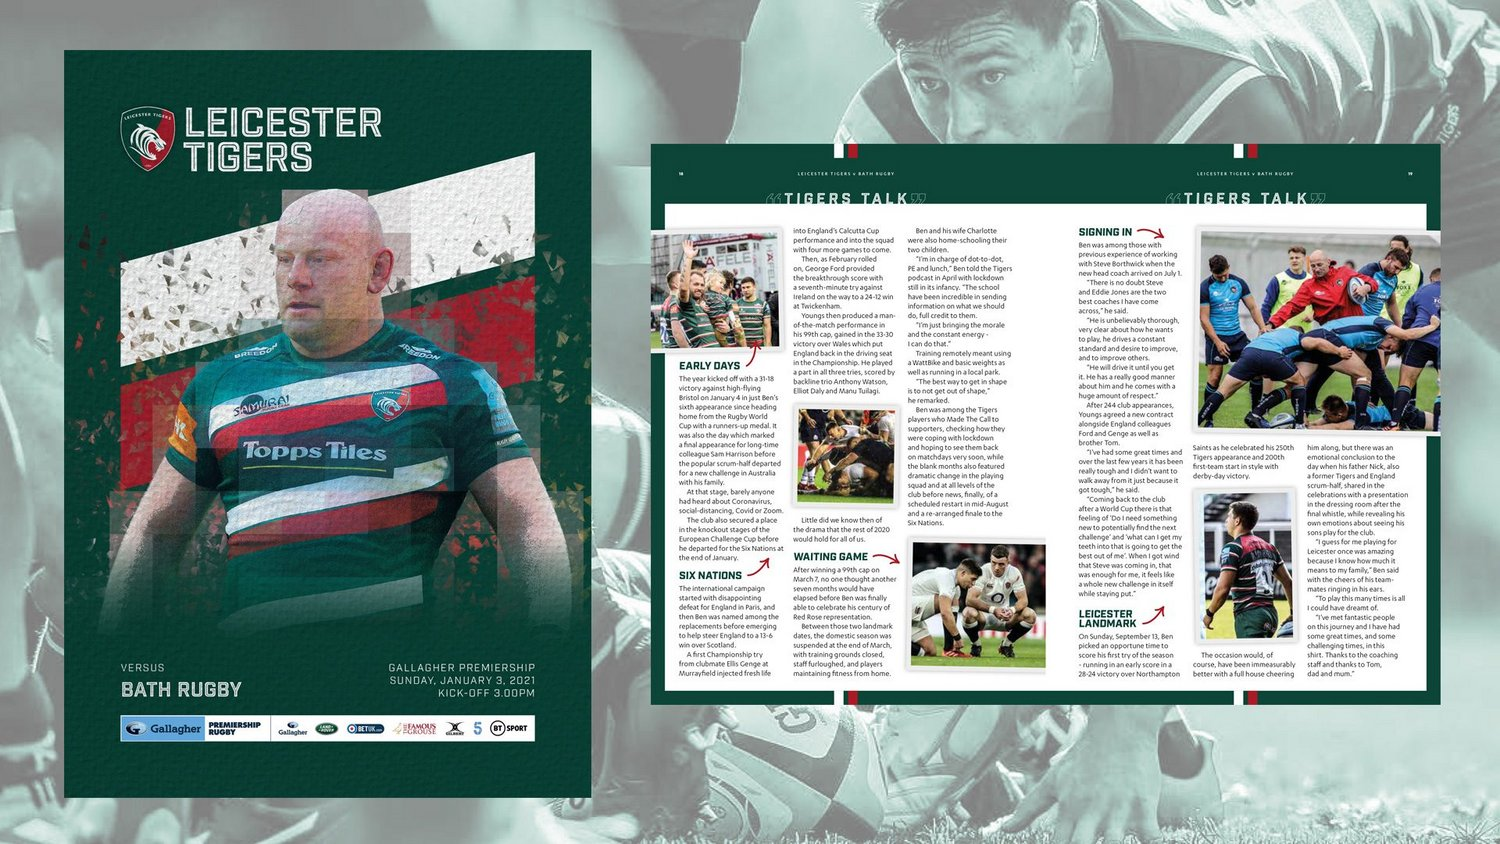 Leicester Tigers v Bath Rugby 2020-21 - Digital Matchday Programme